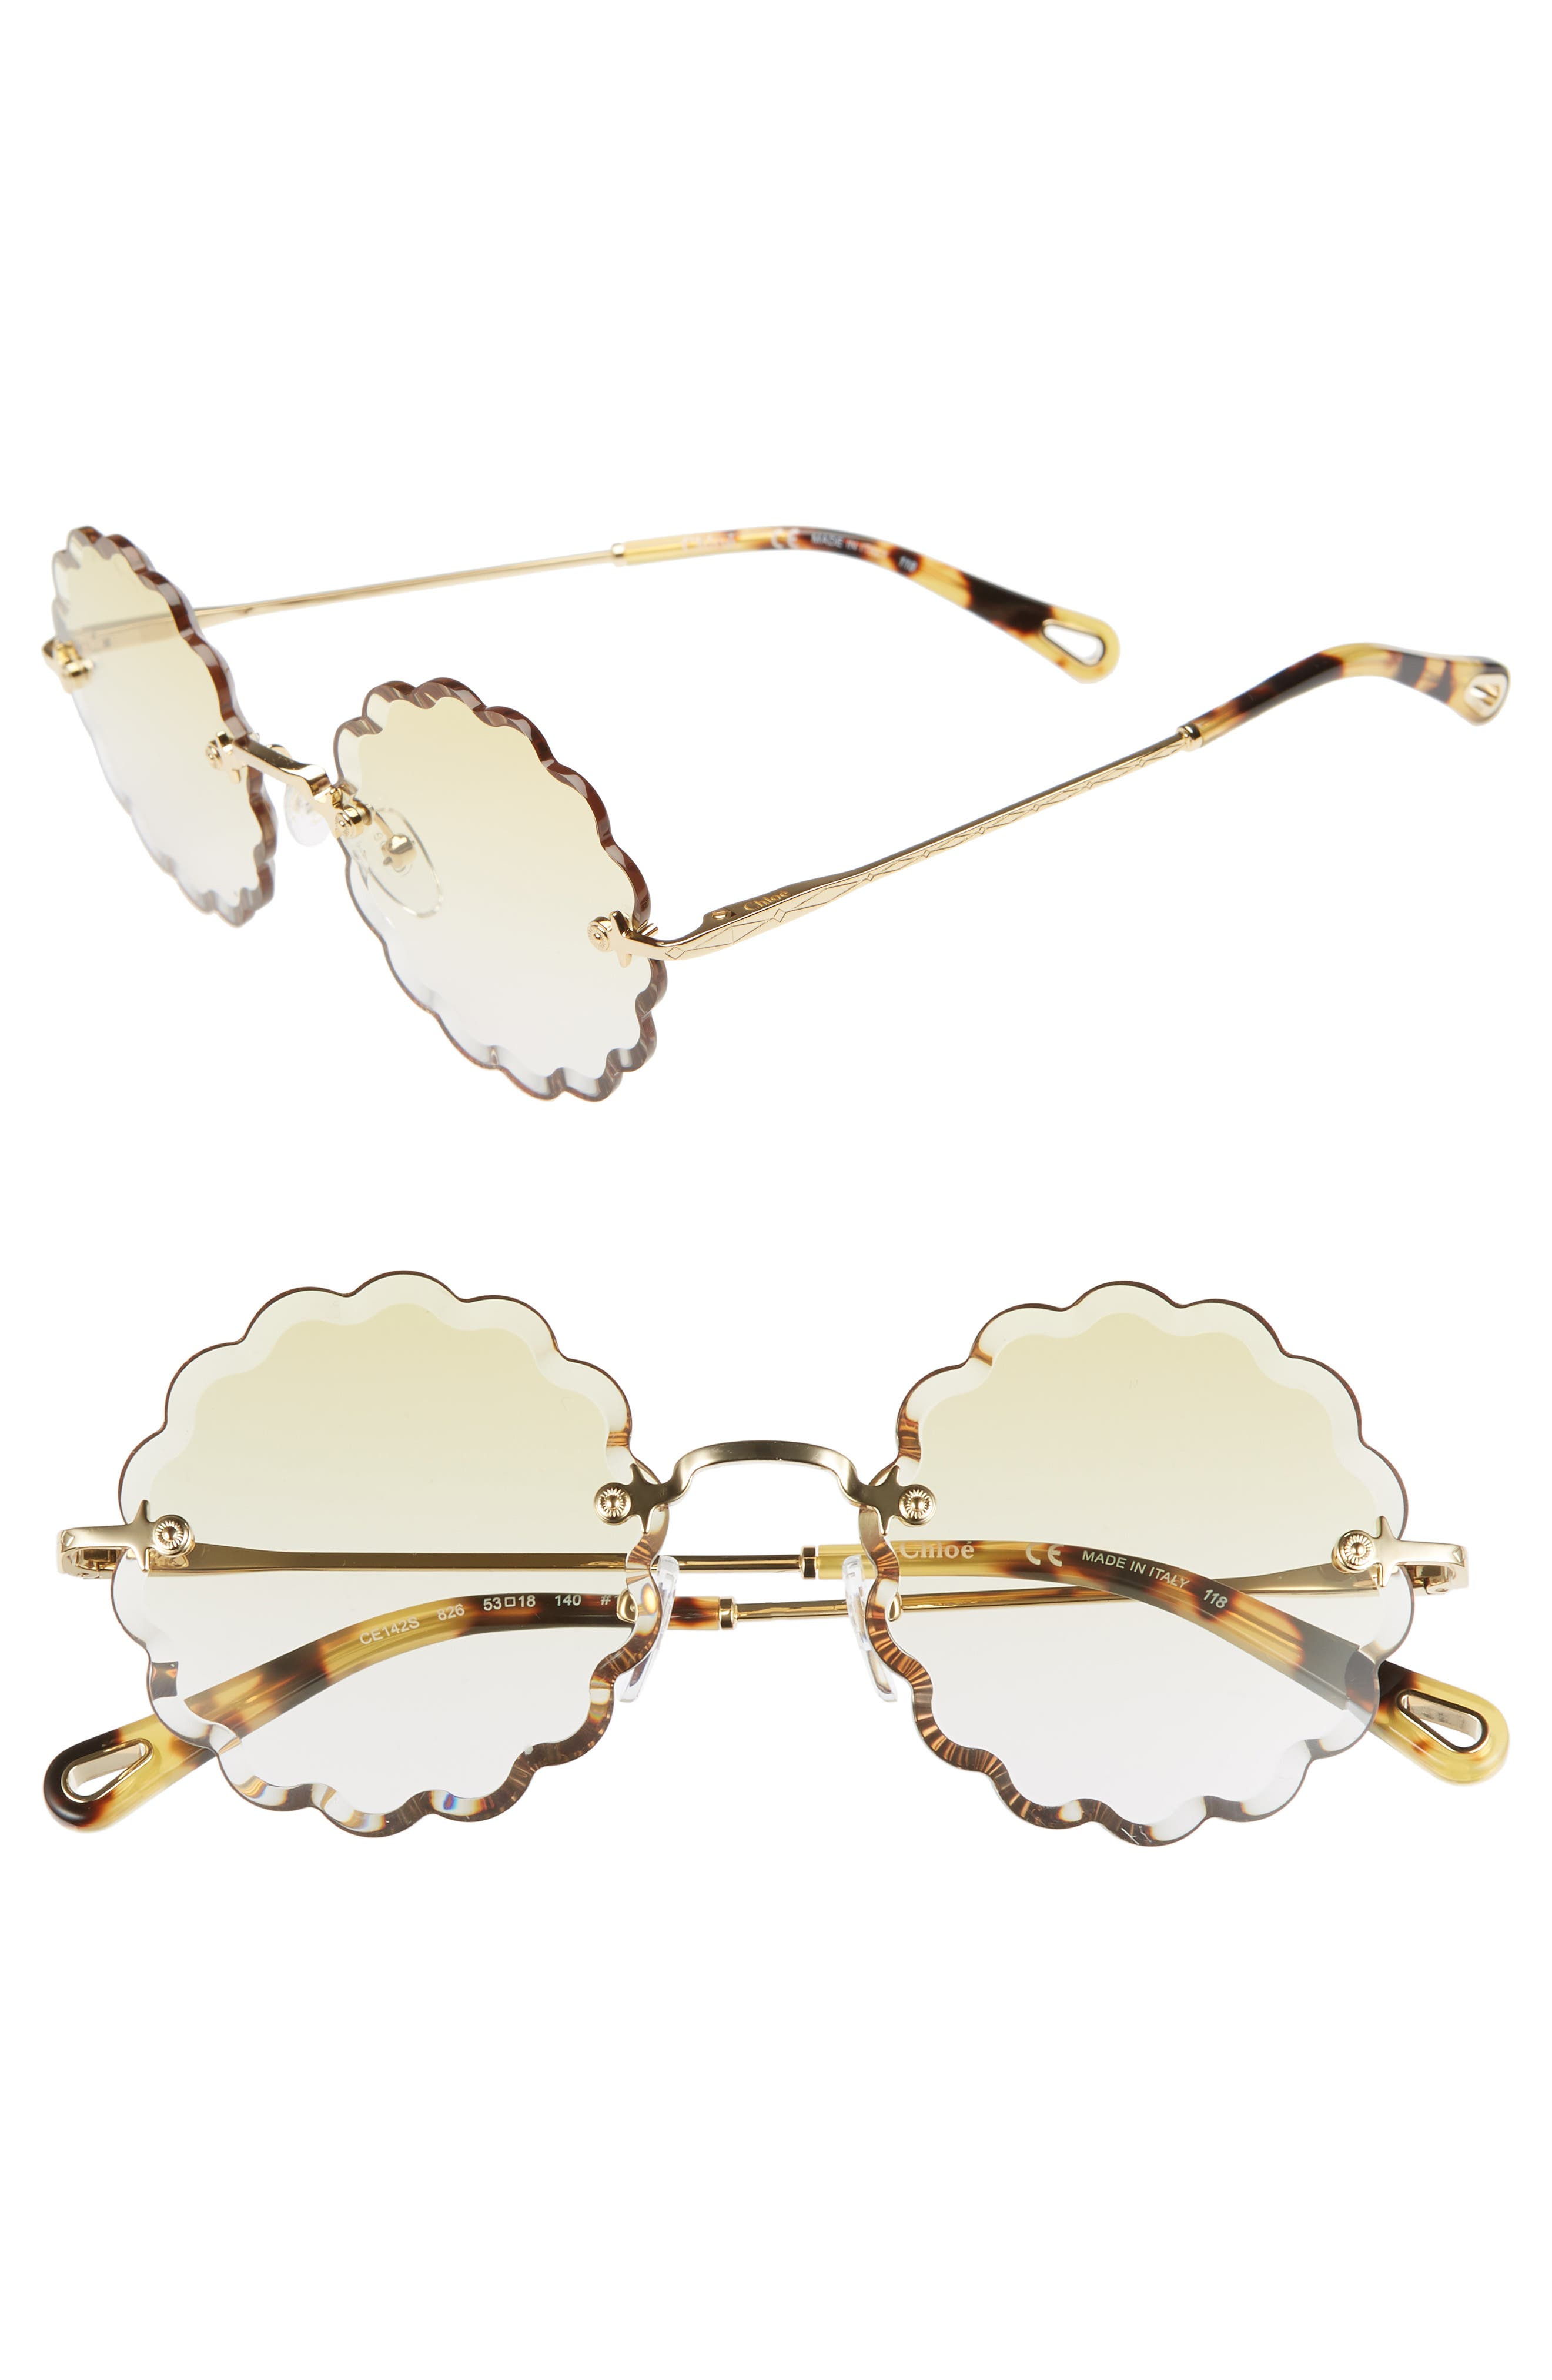 CHLOÉ, Rosie 53mm Scalloped Sunglasses, Main thumbnail 1, color, GOLD/ GRADIENT YELLOW